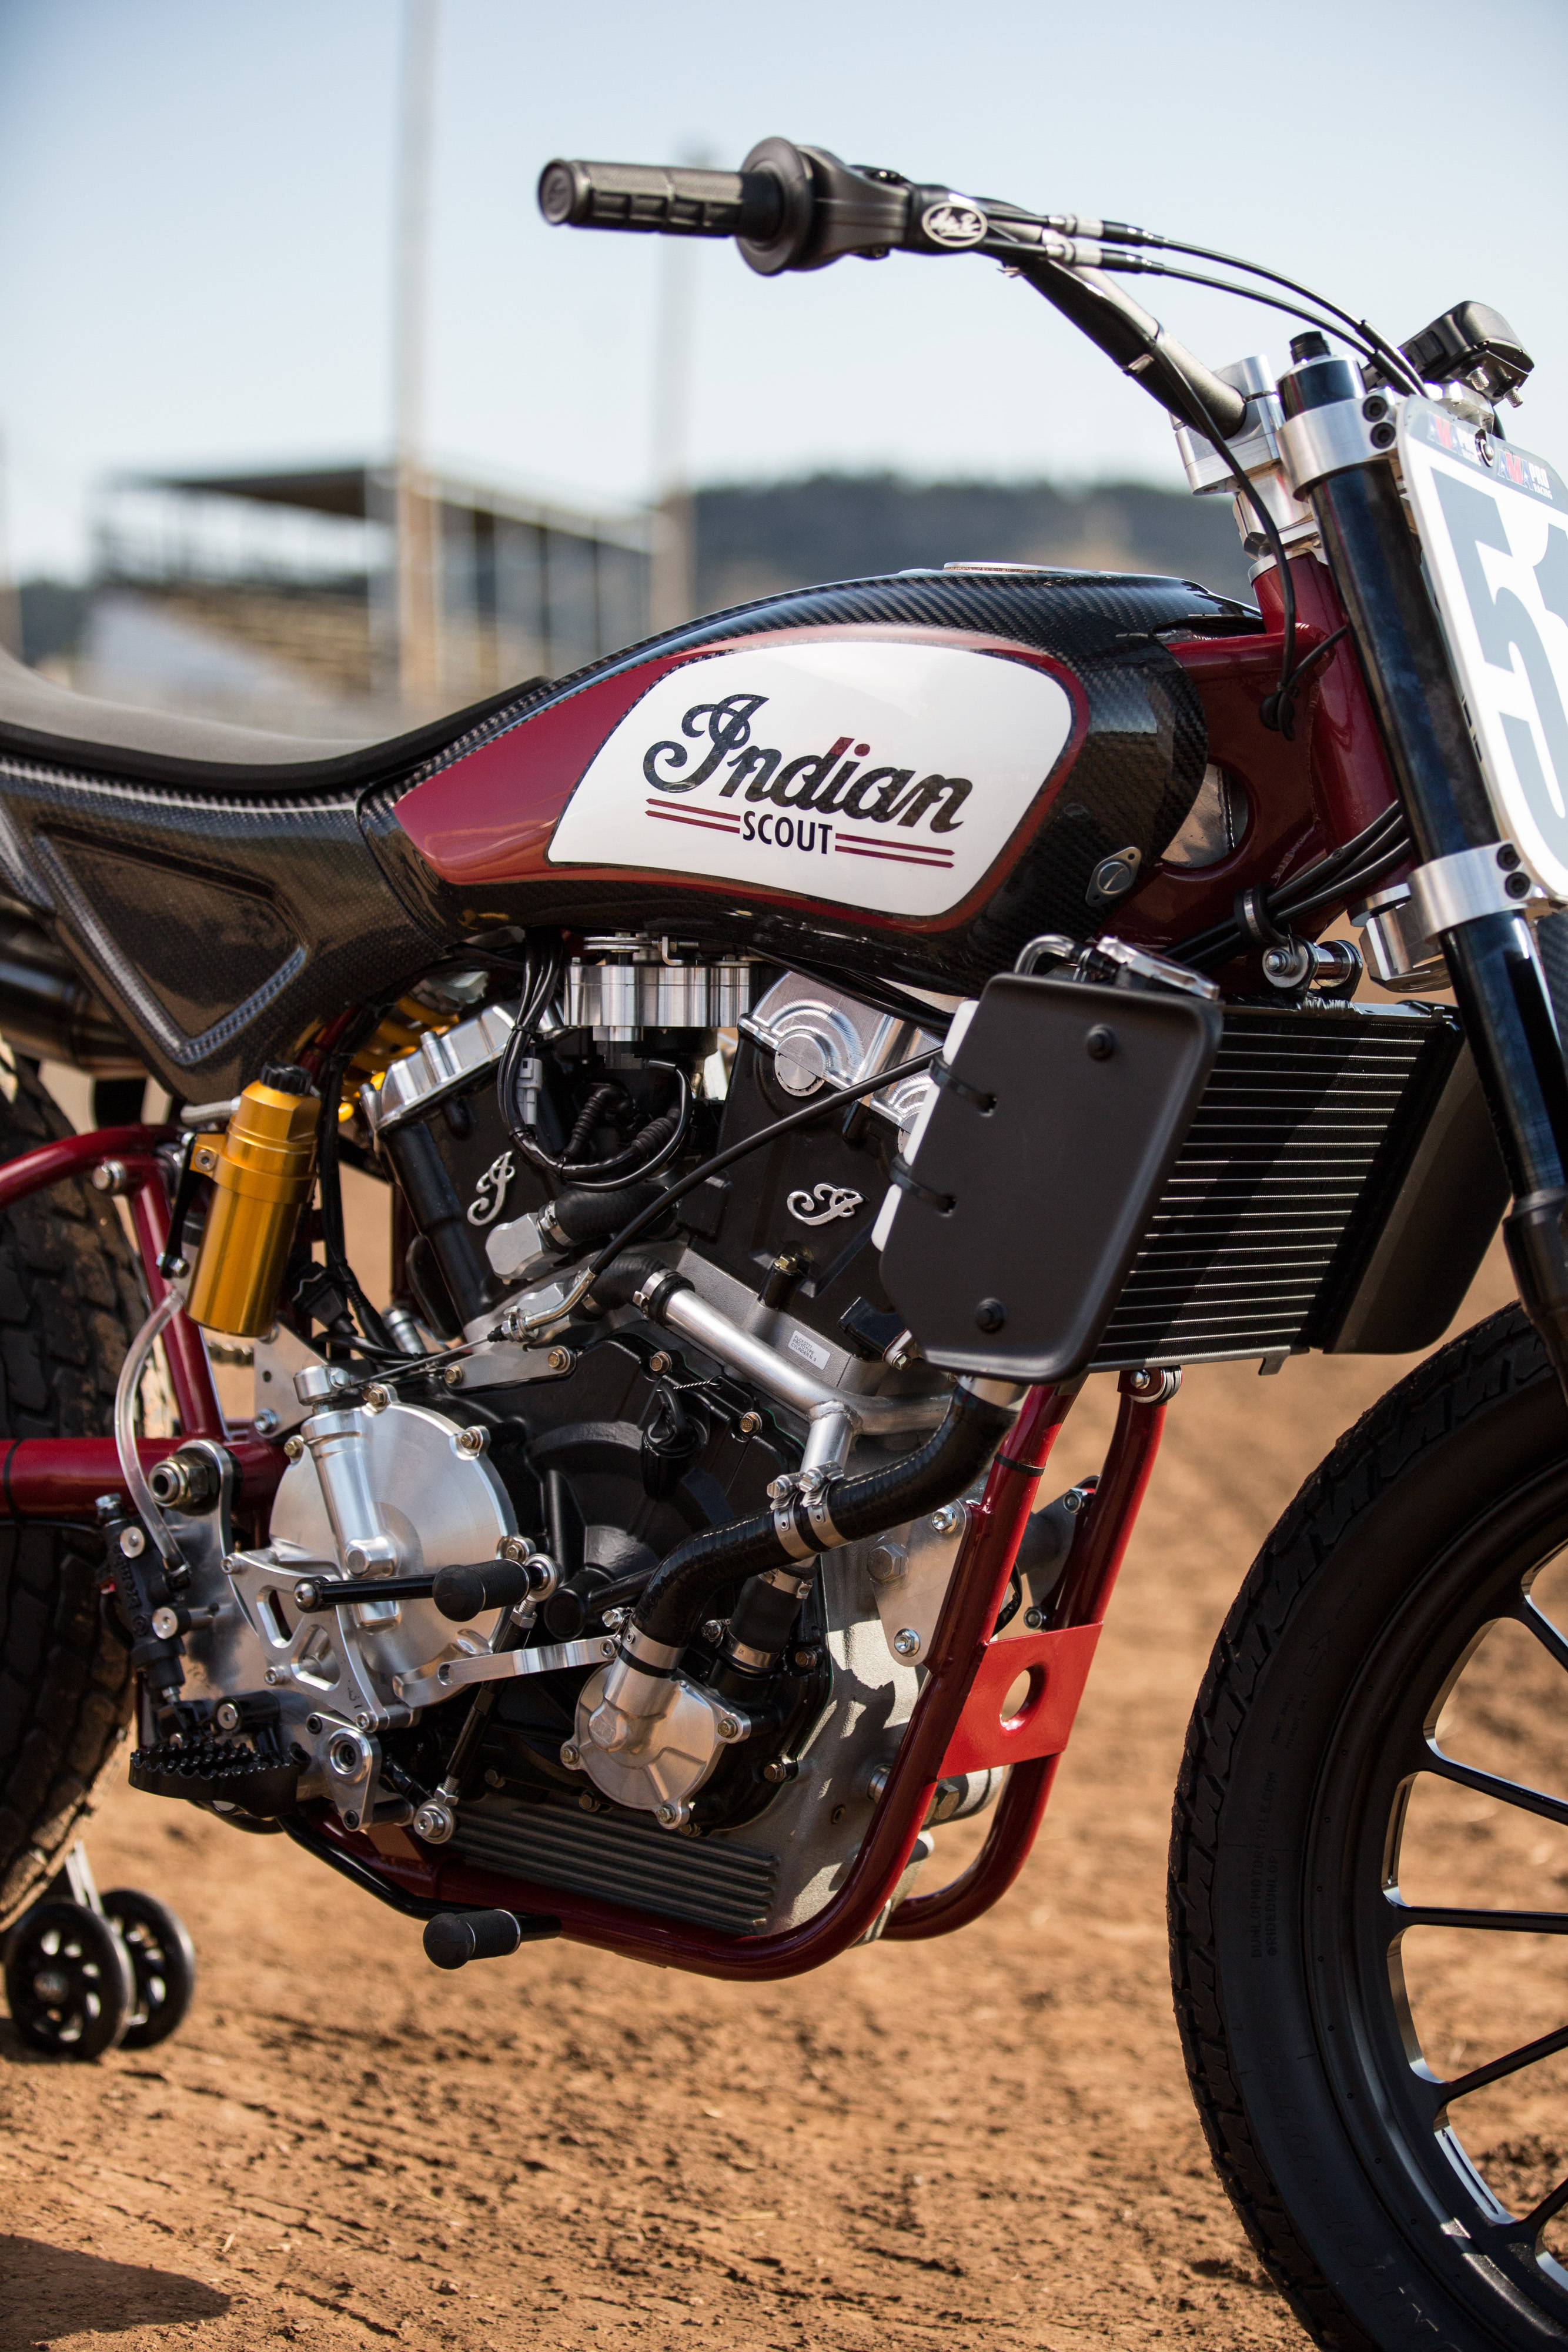 Indian Scout FTR750